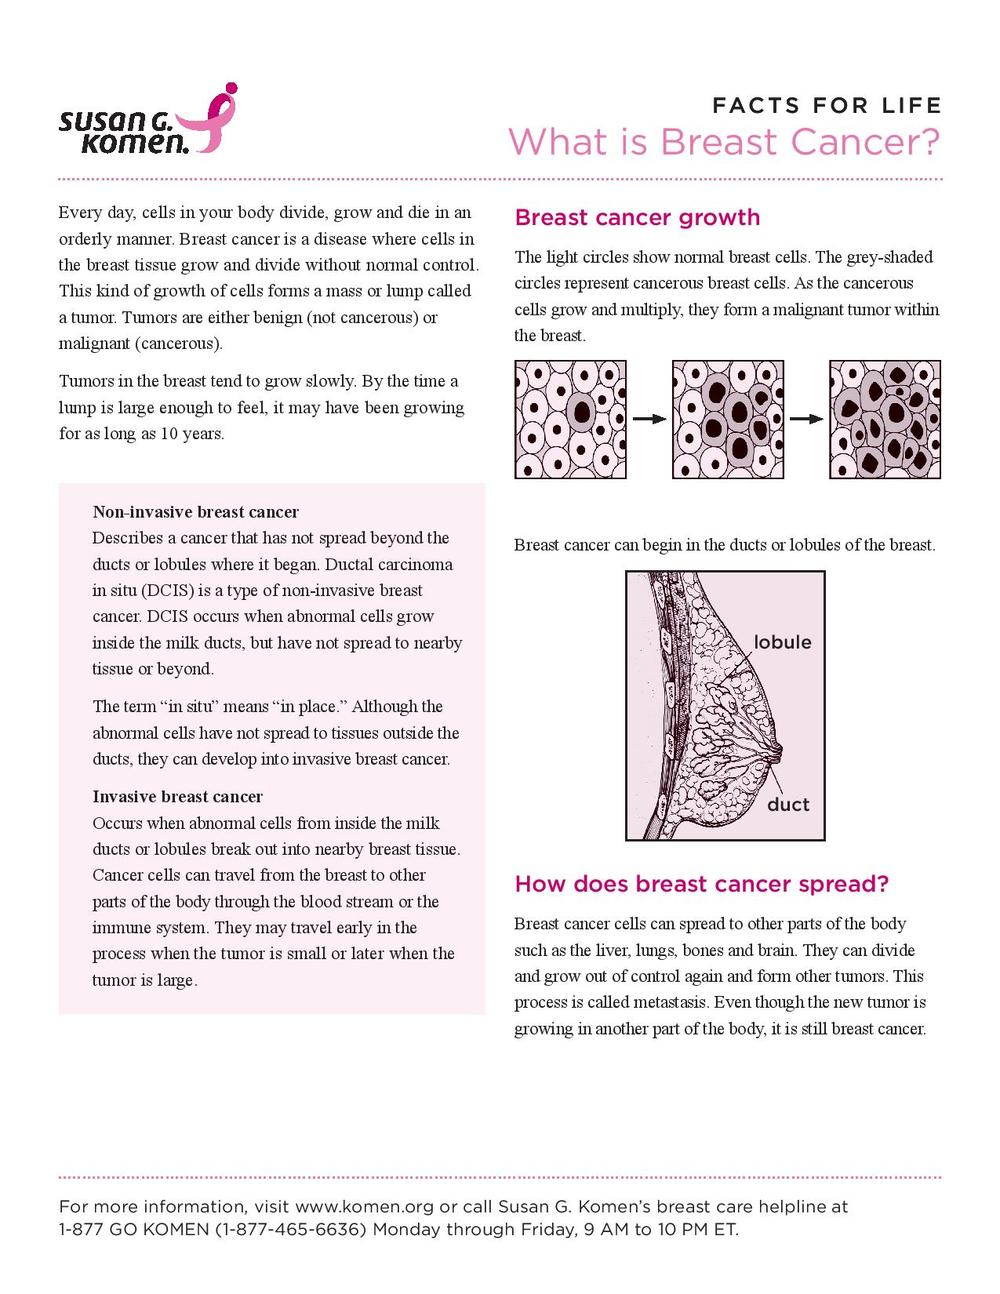 october is breast cancer awareness month so what is breast cancer